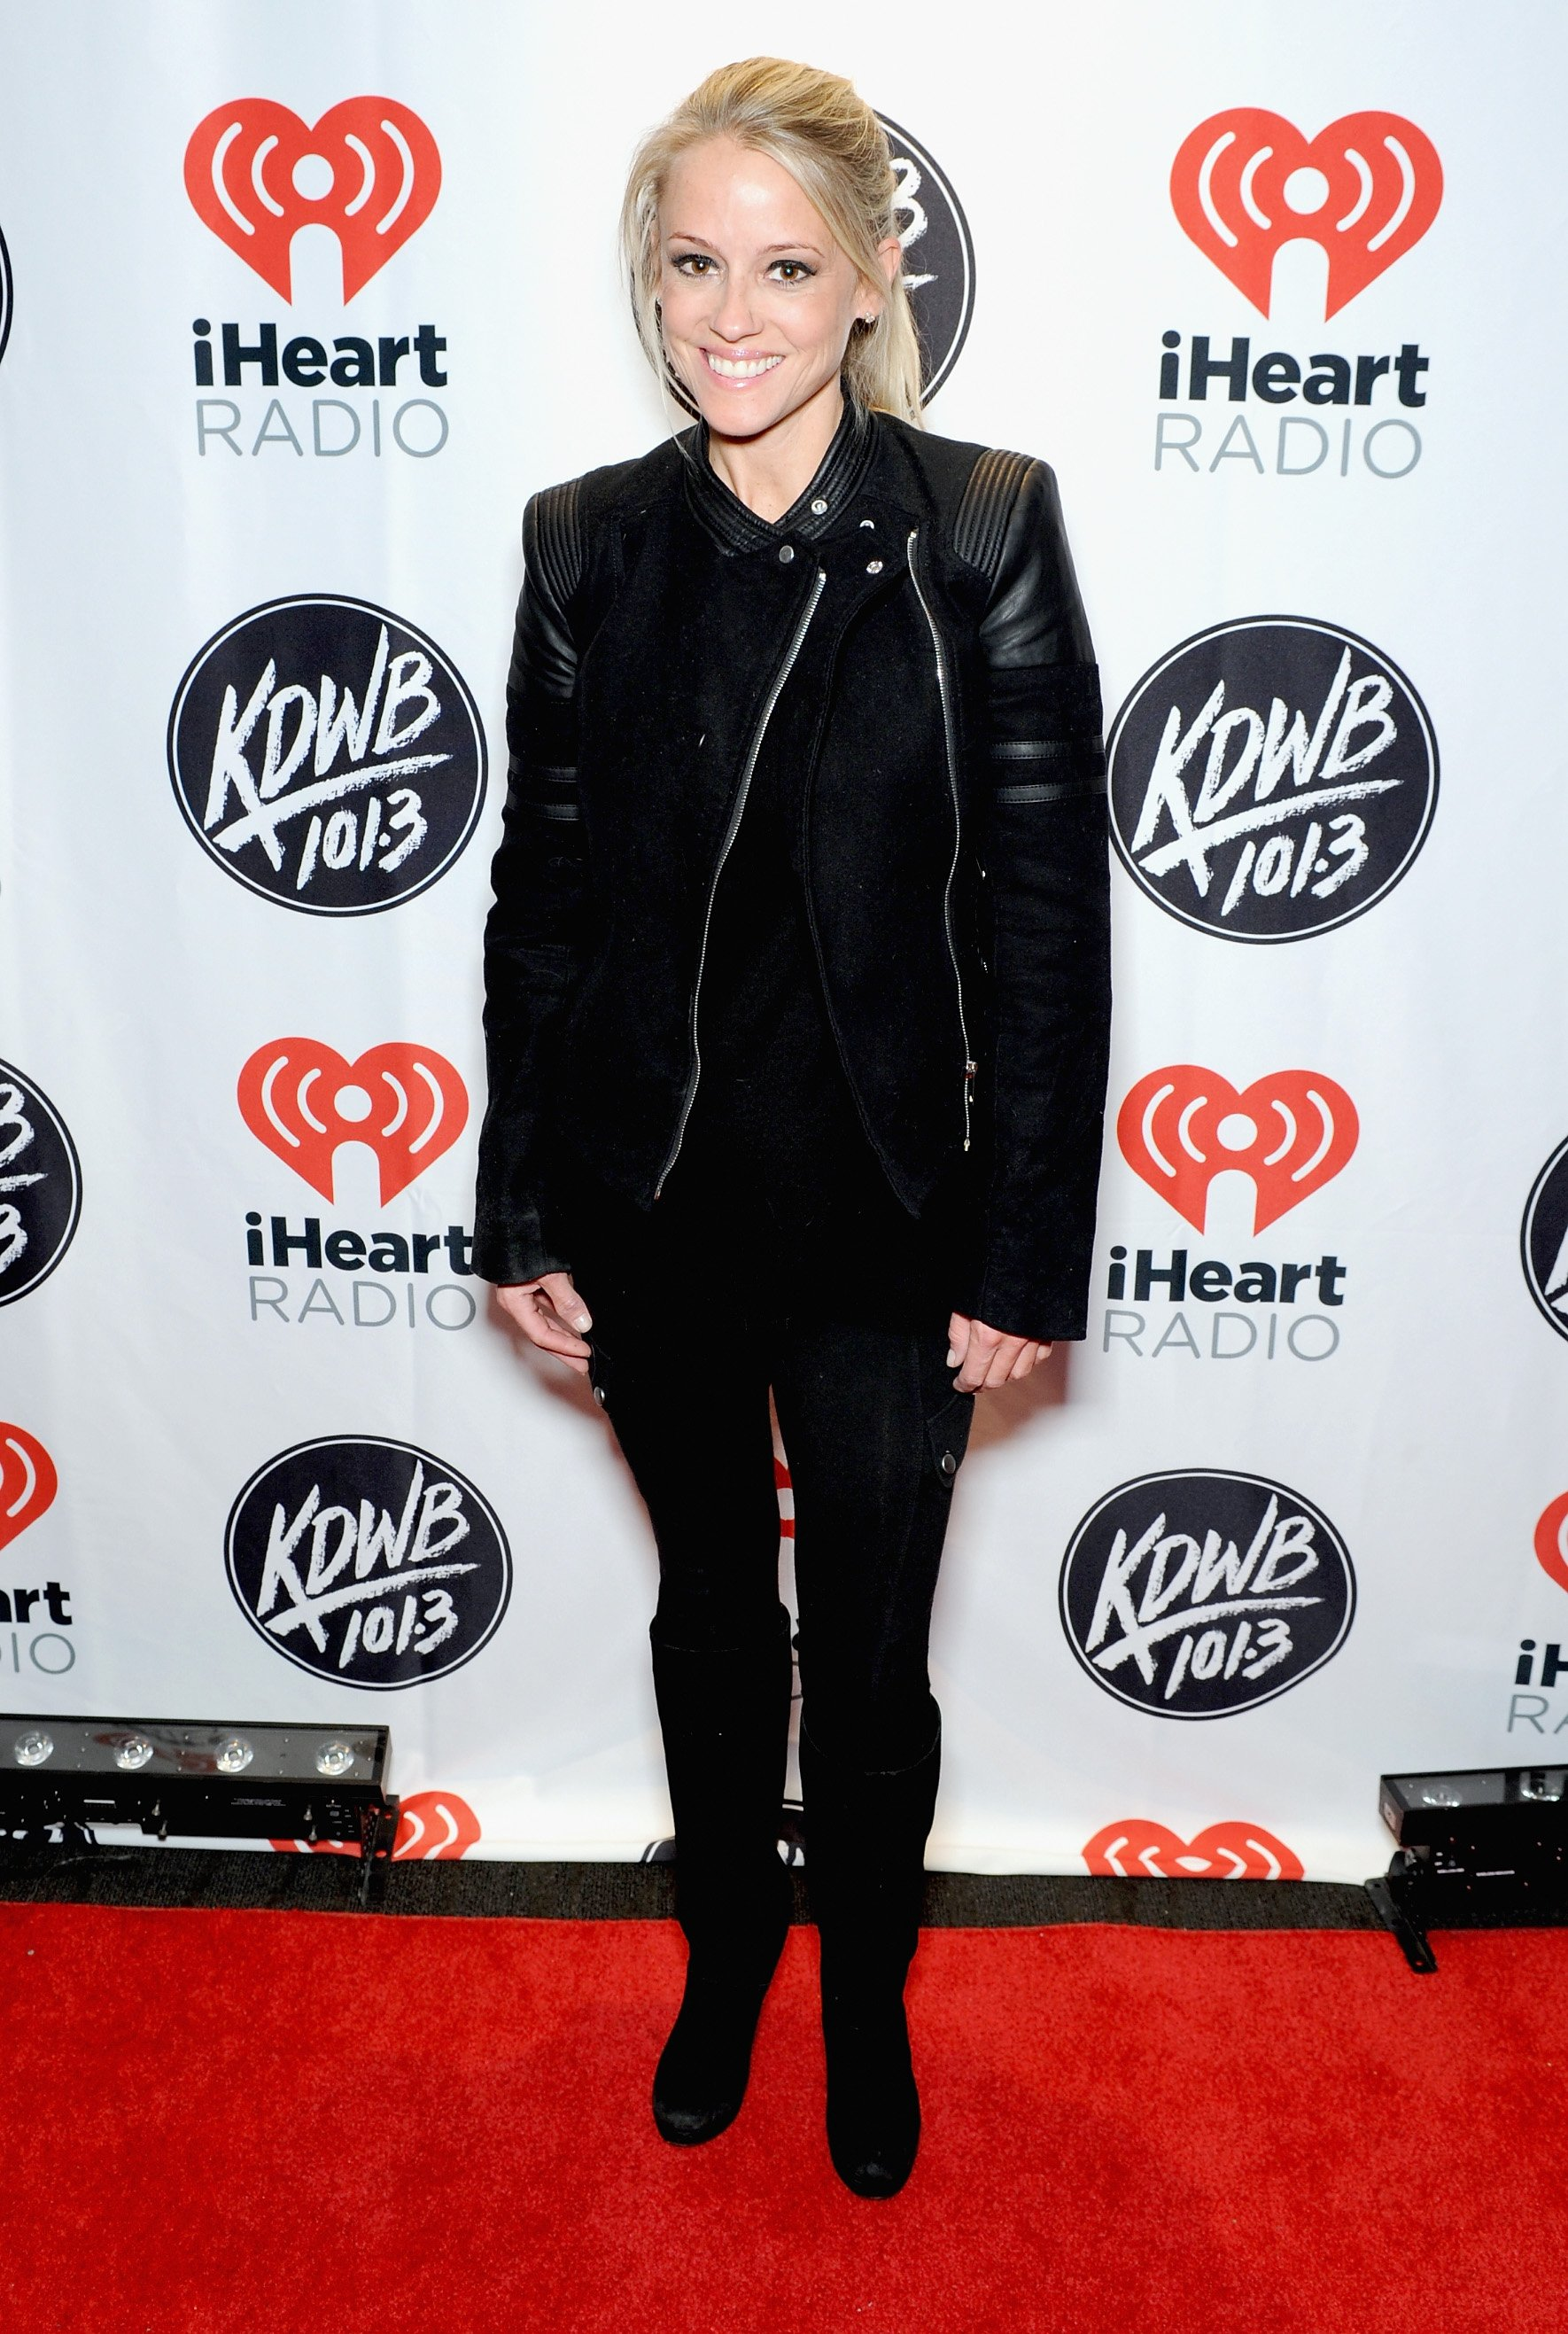 Nicole Curtis attends Jingle Ball 2014 in St Paul, Minnesota on December 8, 2014 | Photo: Getty Images